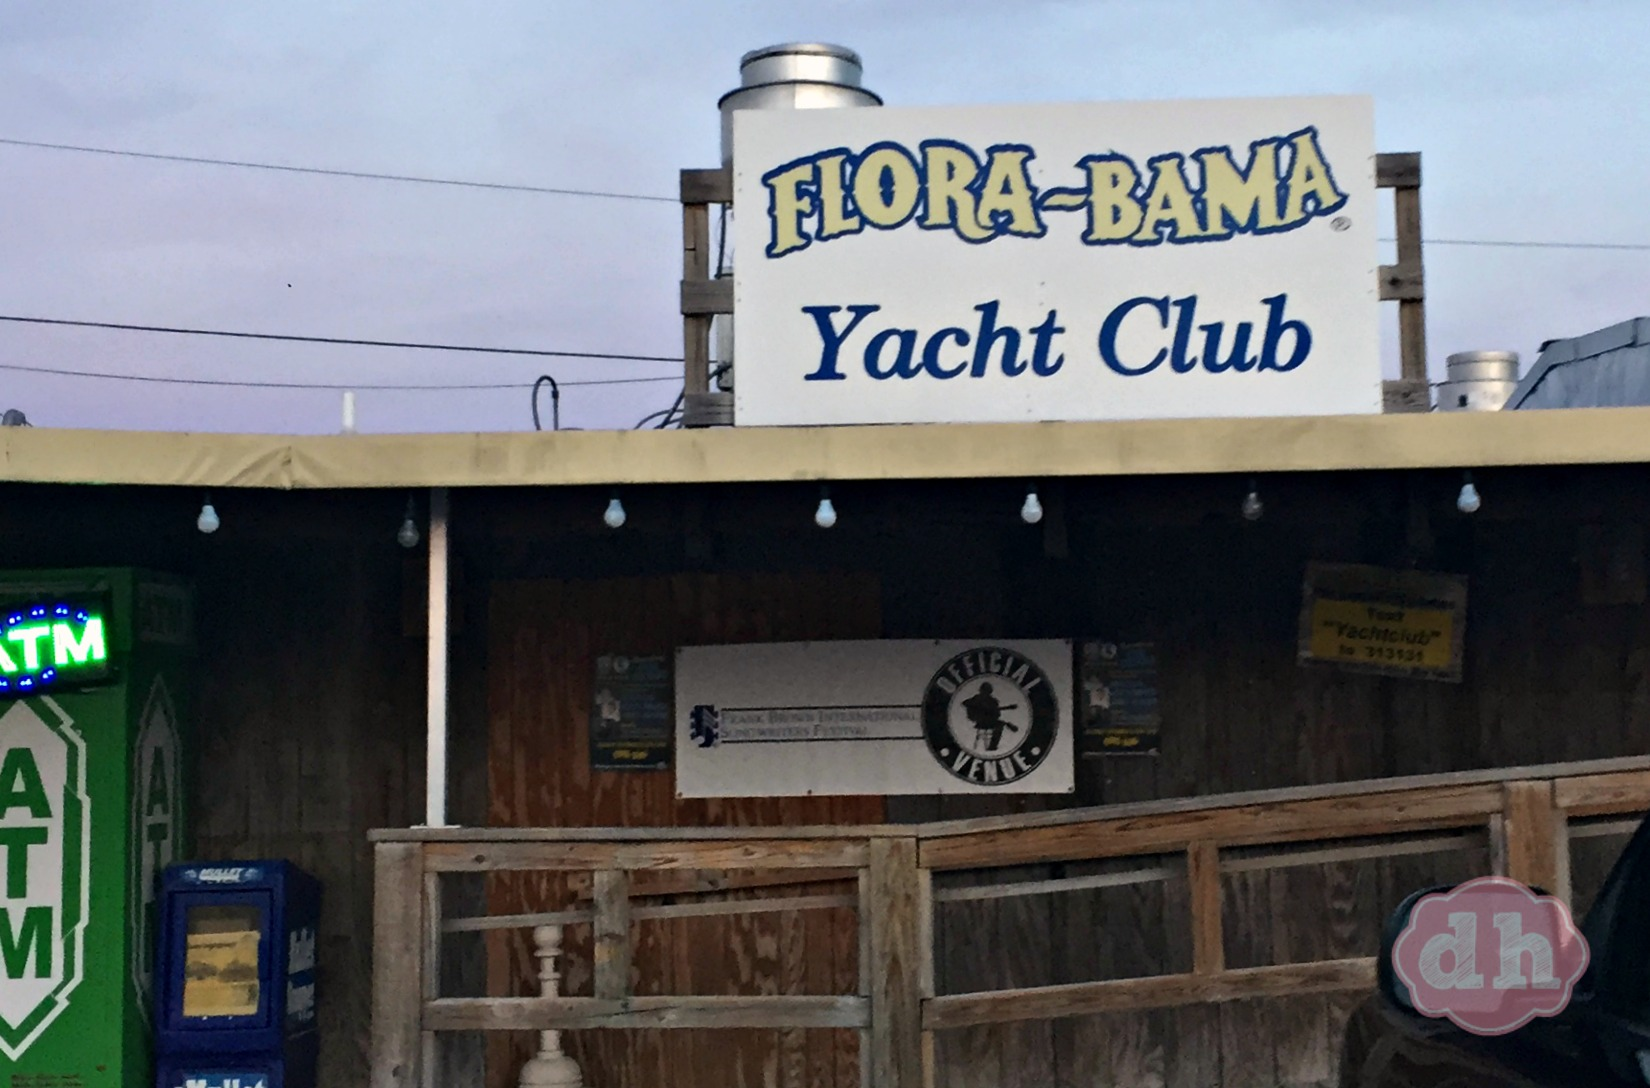 My First Taste of Homemade Pork Rinds at the Florabama Yacht Club